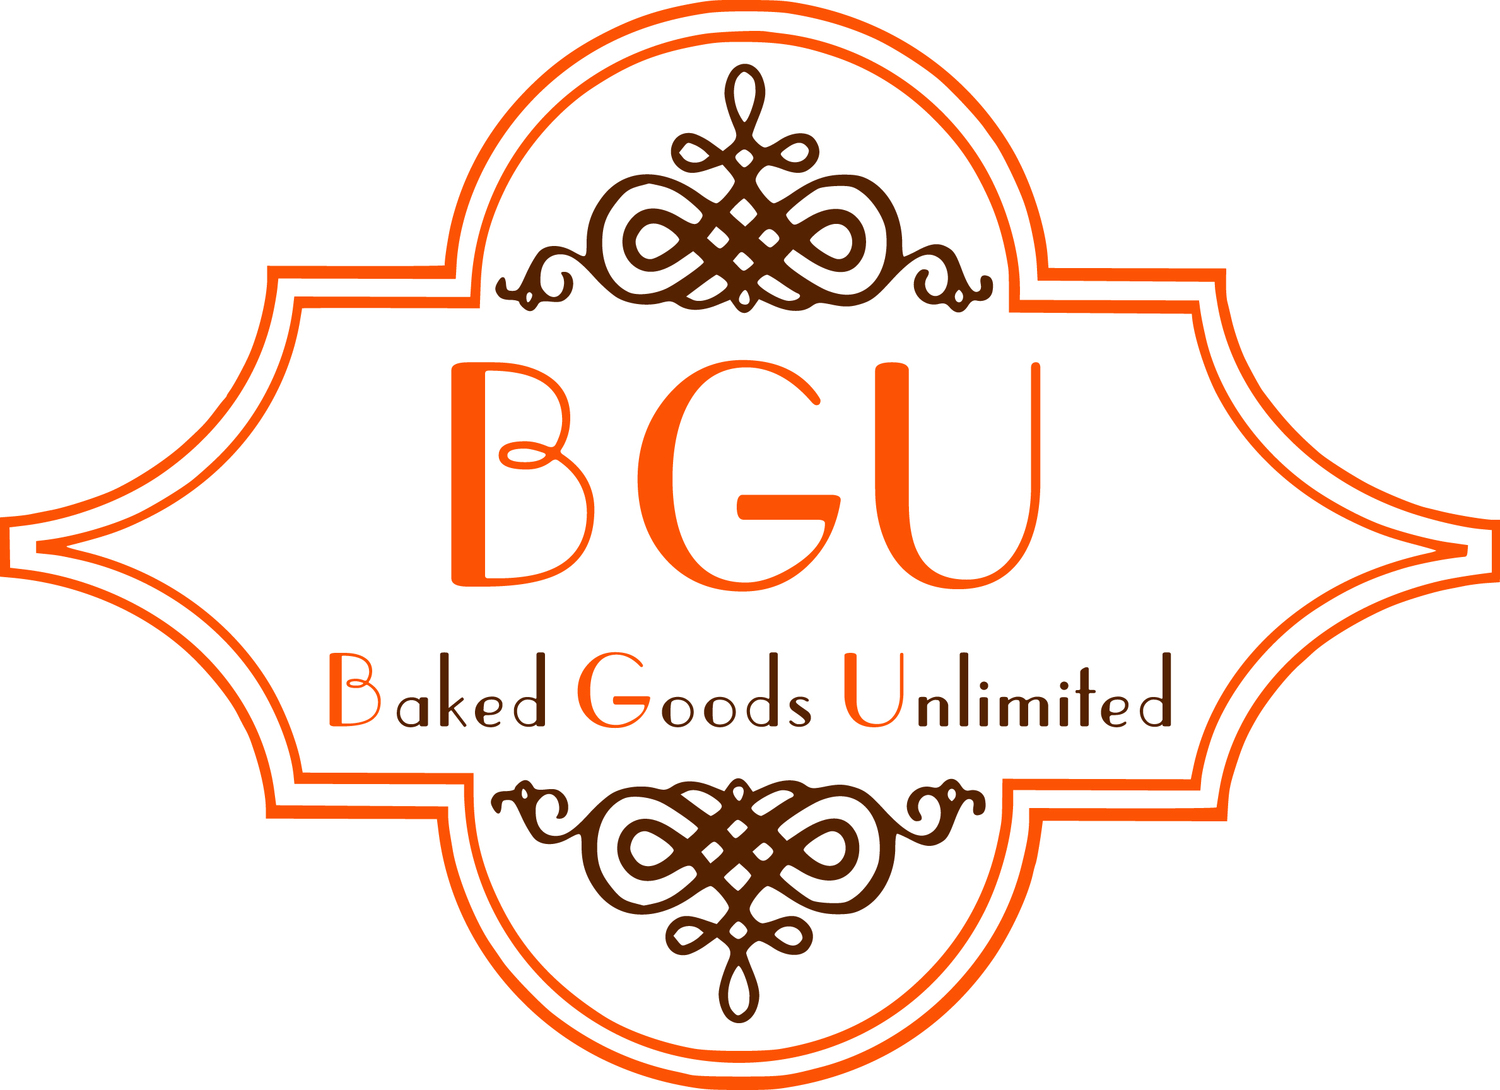 Baked Goods Unlimited